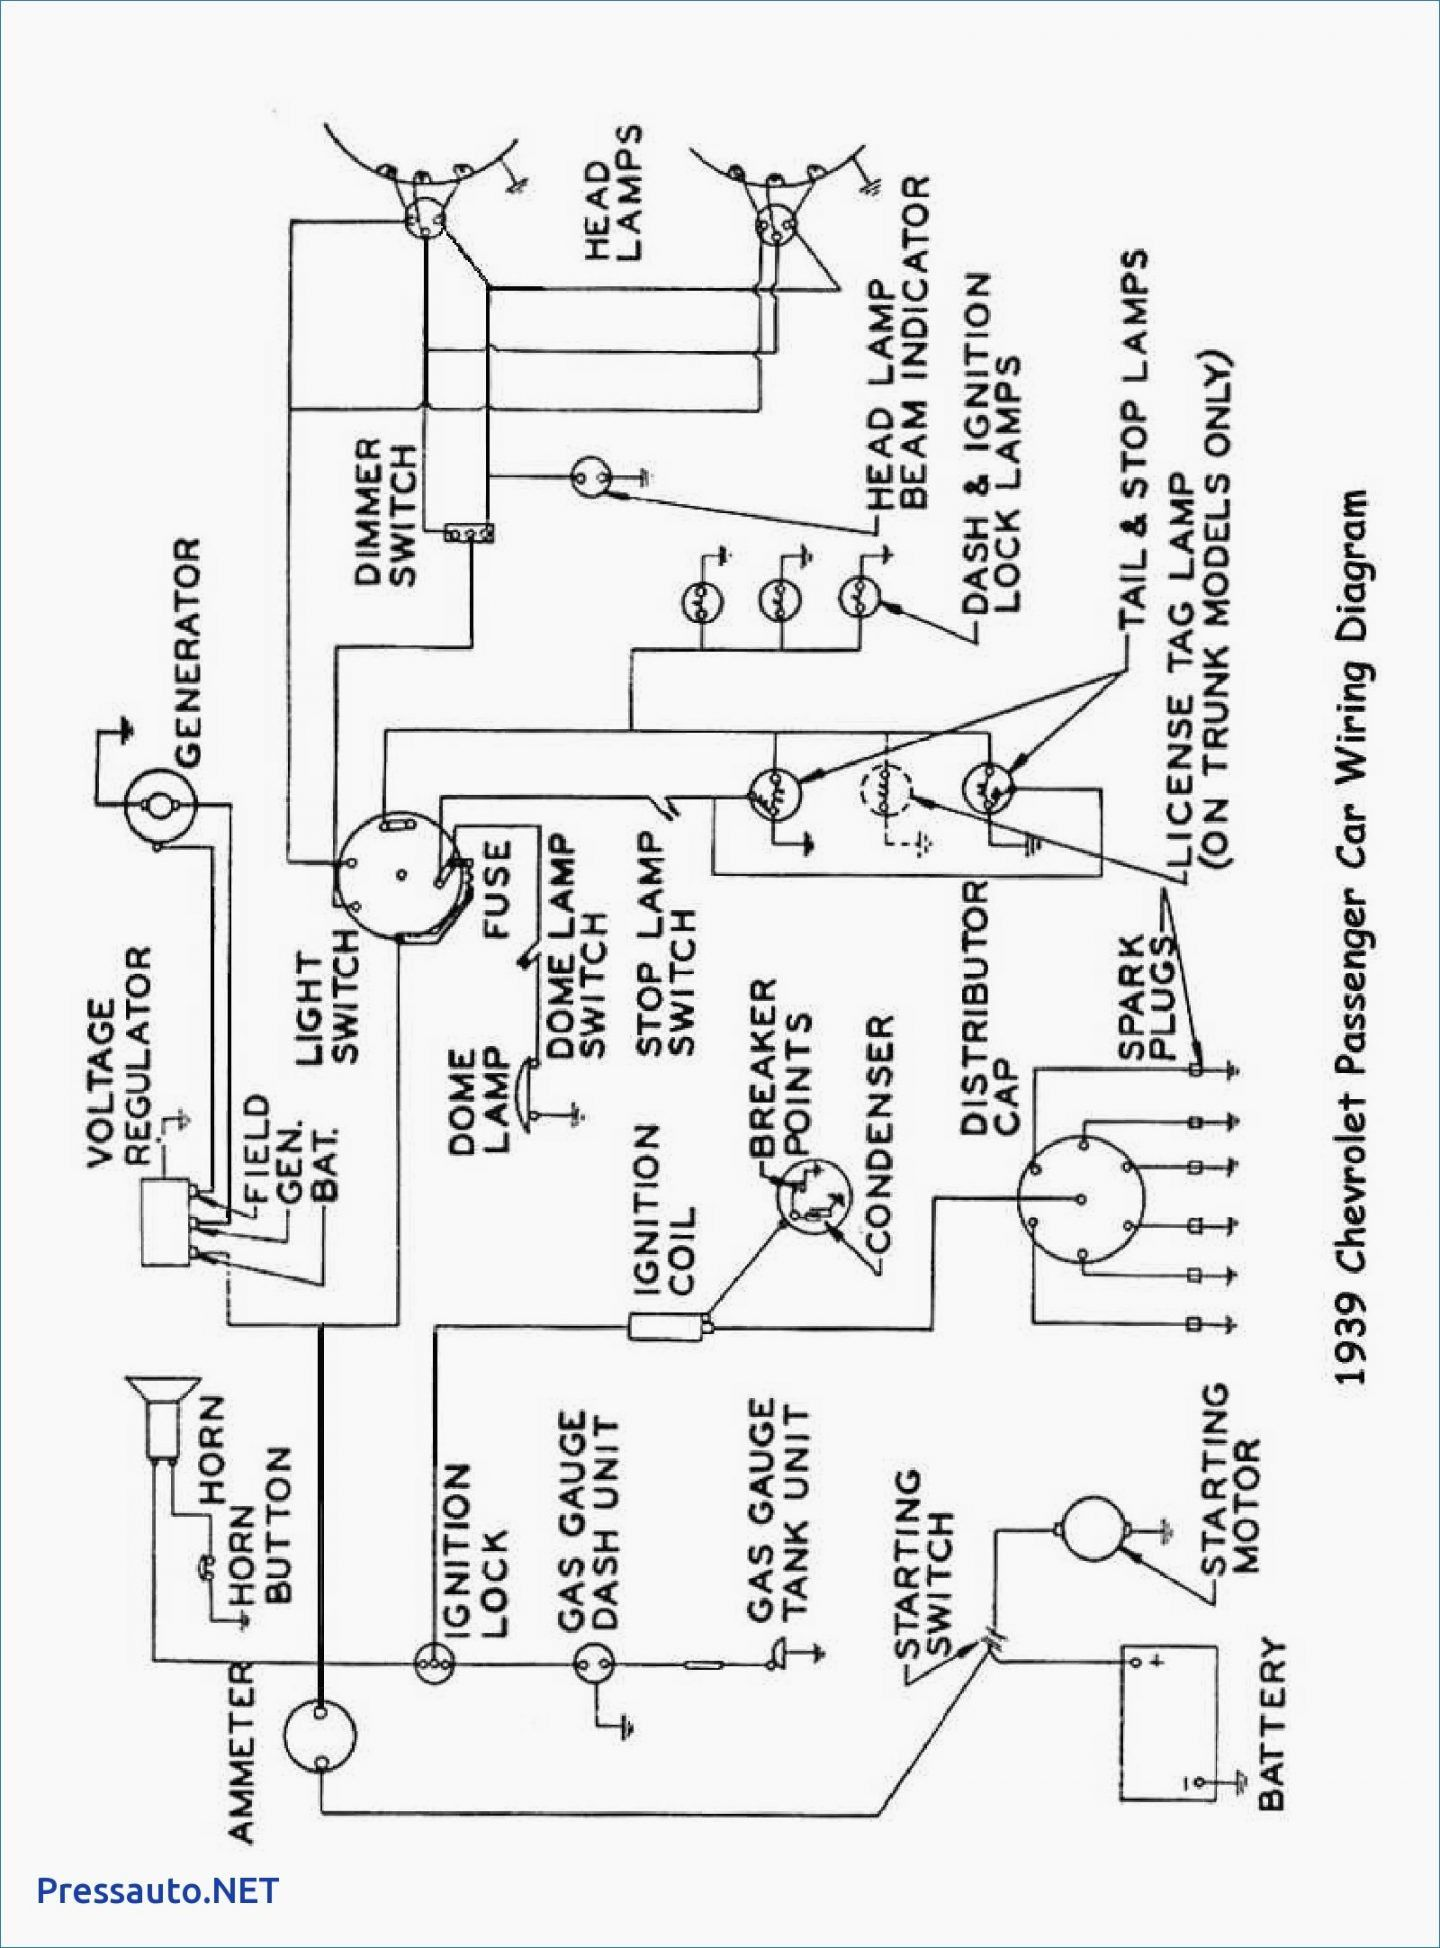 Wiring Diagram Welding Machine Inspirationa Best Of Pdf Electrical Wiring Diagram Remote Car Starter Diagram